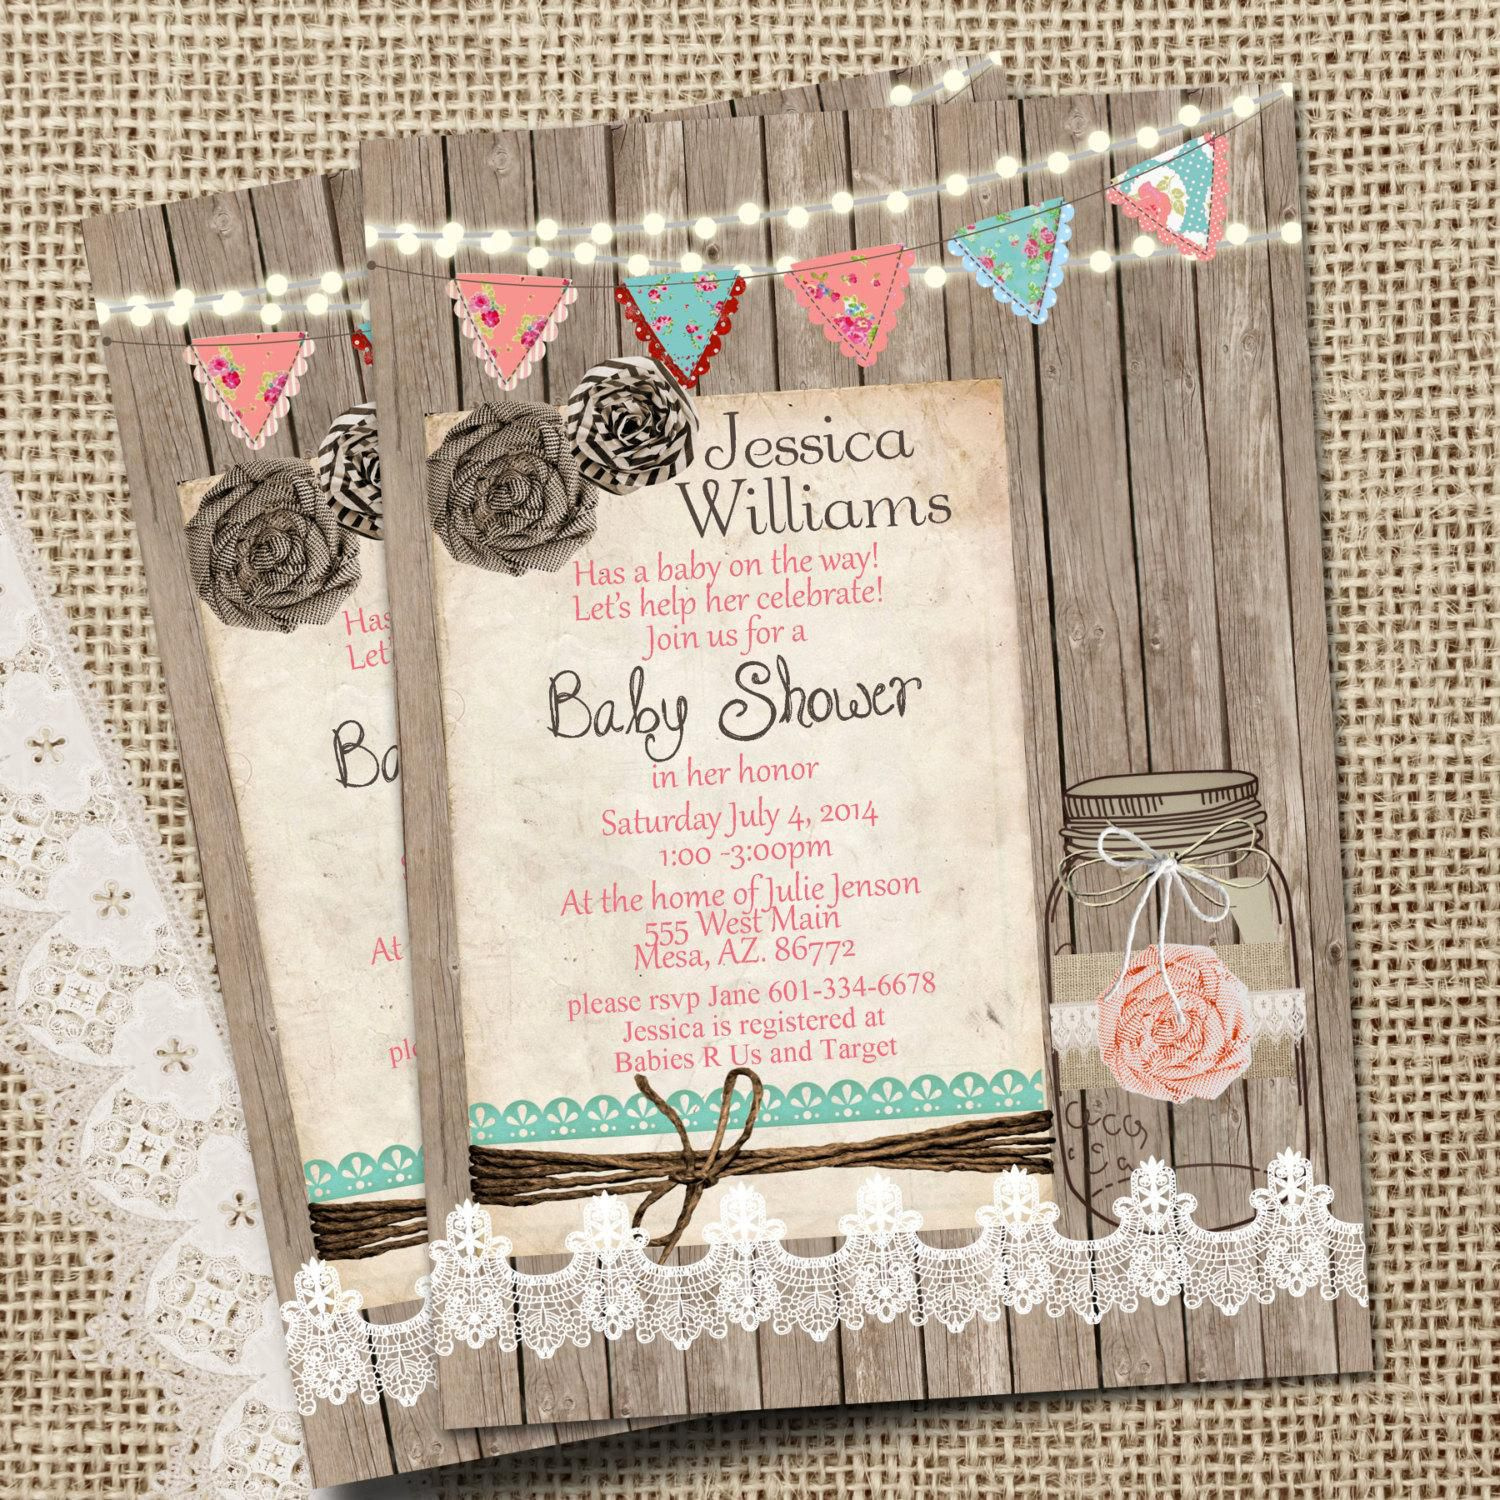 Full Size of Baby Shower:63+ Delightful Cheap Baby Shower Invitations Image Inspirations Cheap Baby Shower Invitations Arreglos Para Baby Shower Baby Shower Clip Art Baby Shower Food Ideas Baby Shower Ideas For Boys Nice Cheap Baby Shower Invitations 31 Wyllieforgovernor